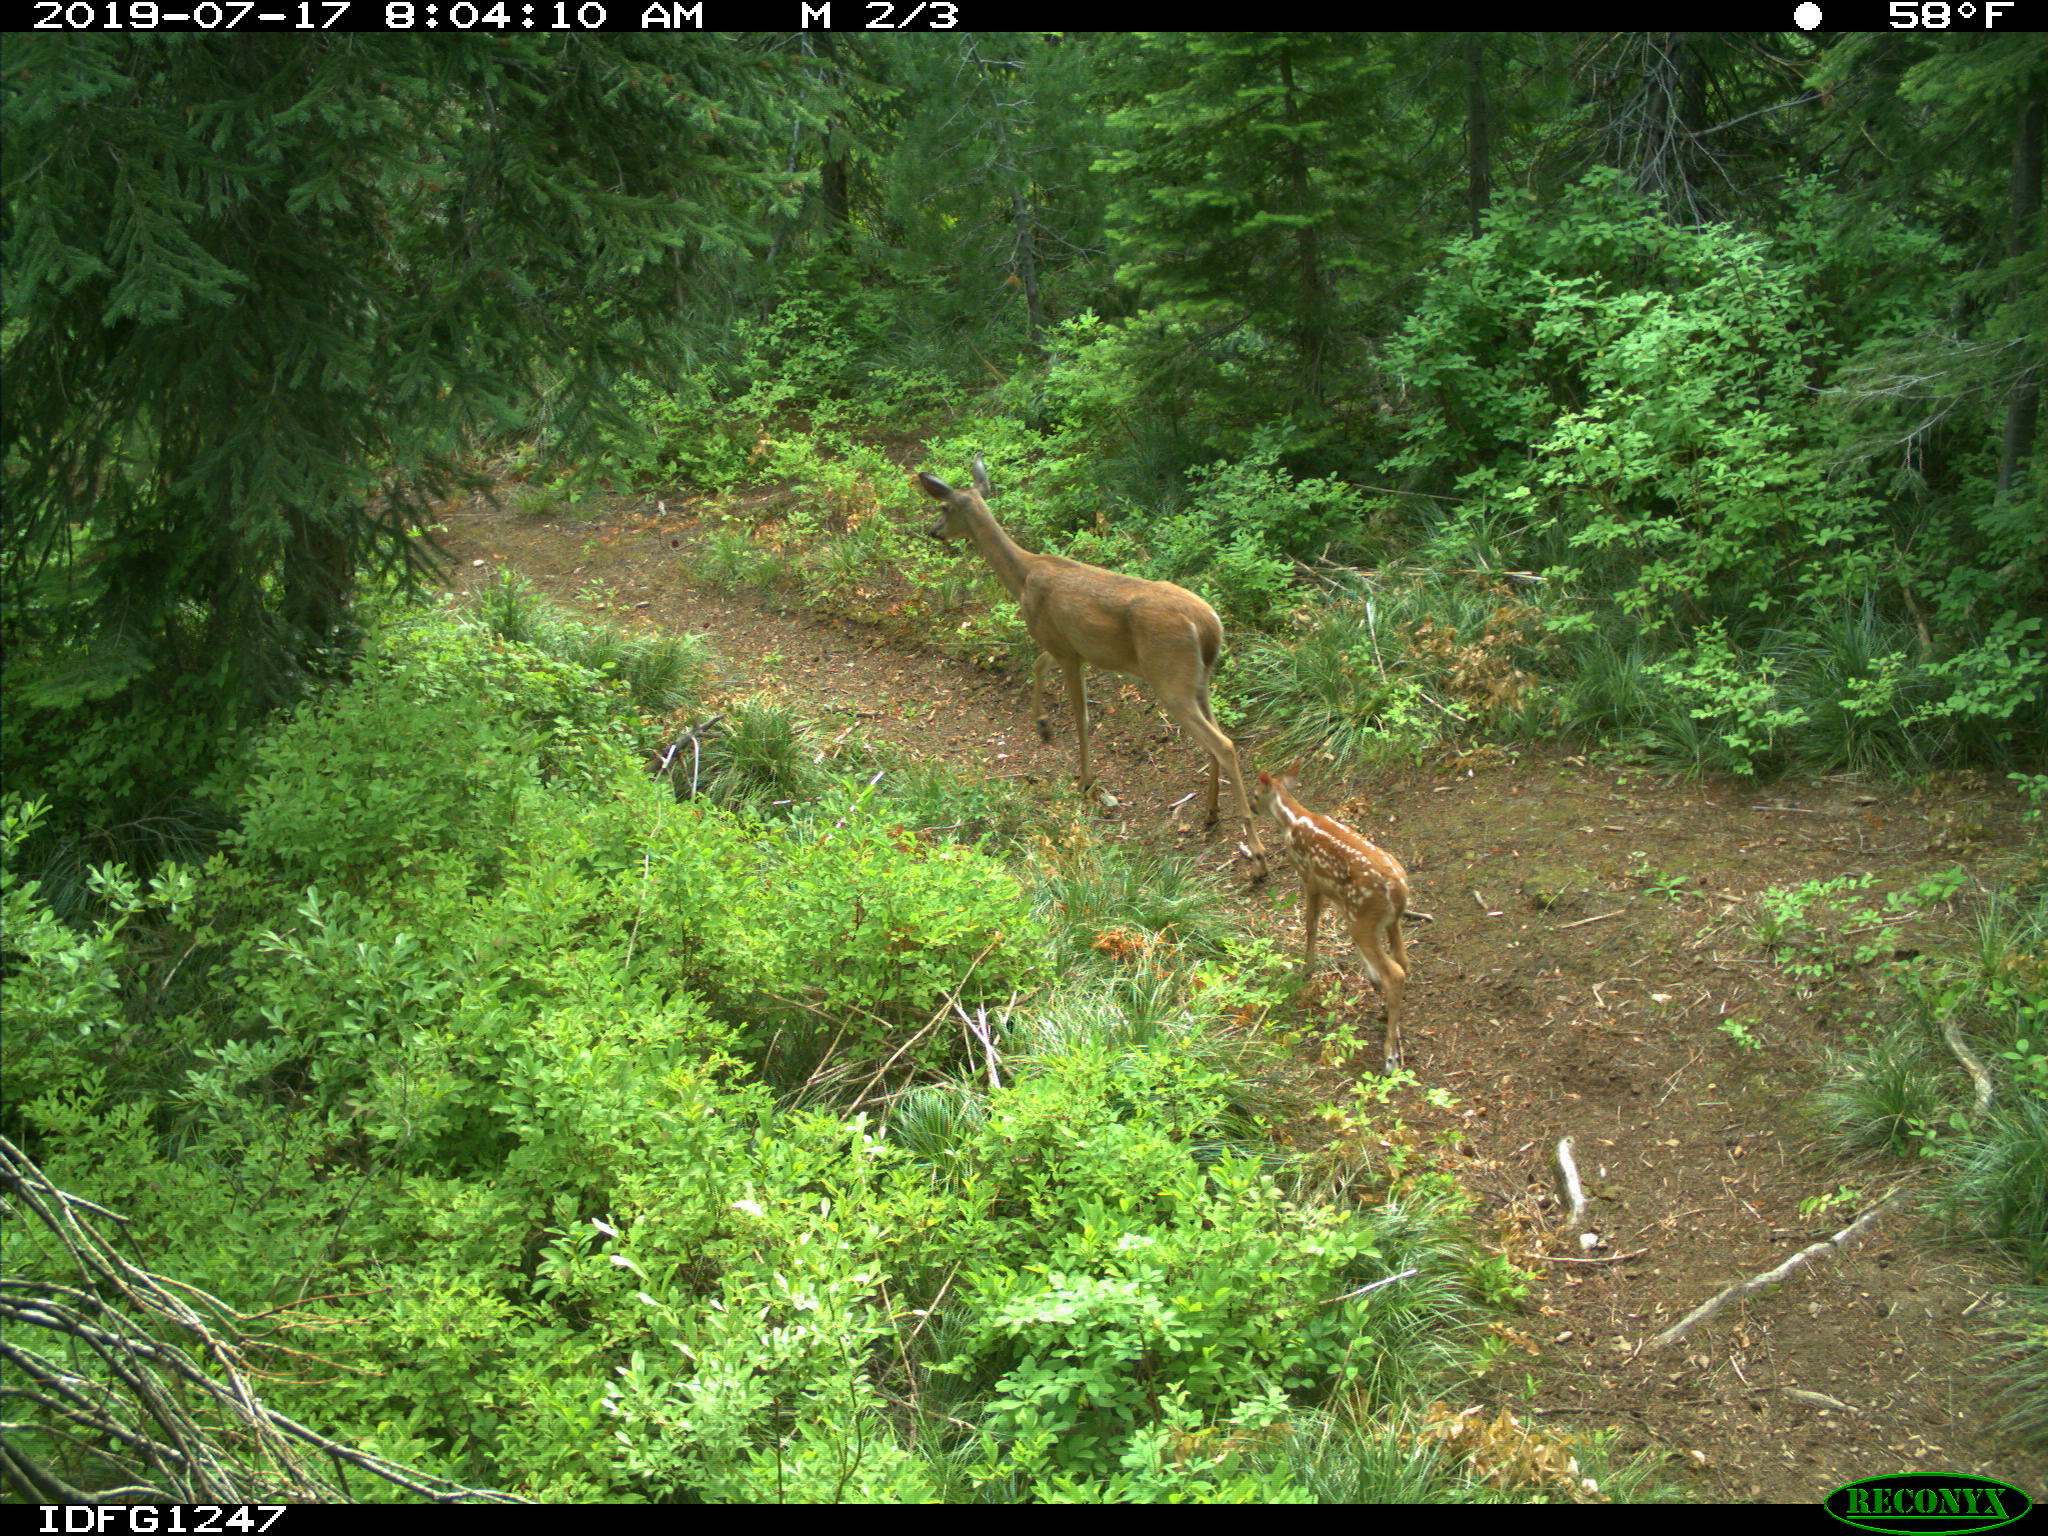 White-tailed deer camera research1.jpg